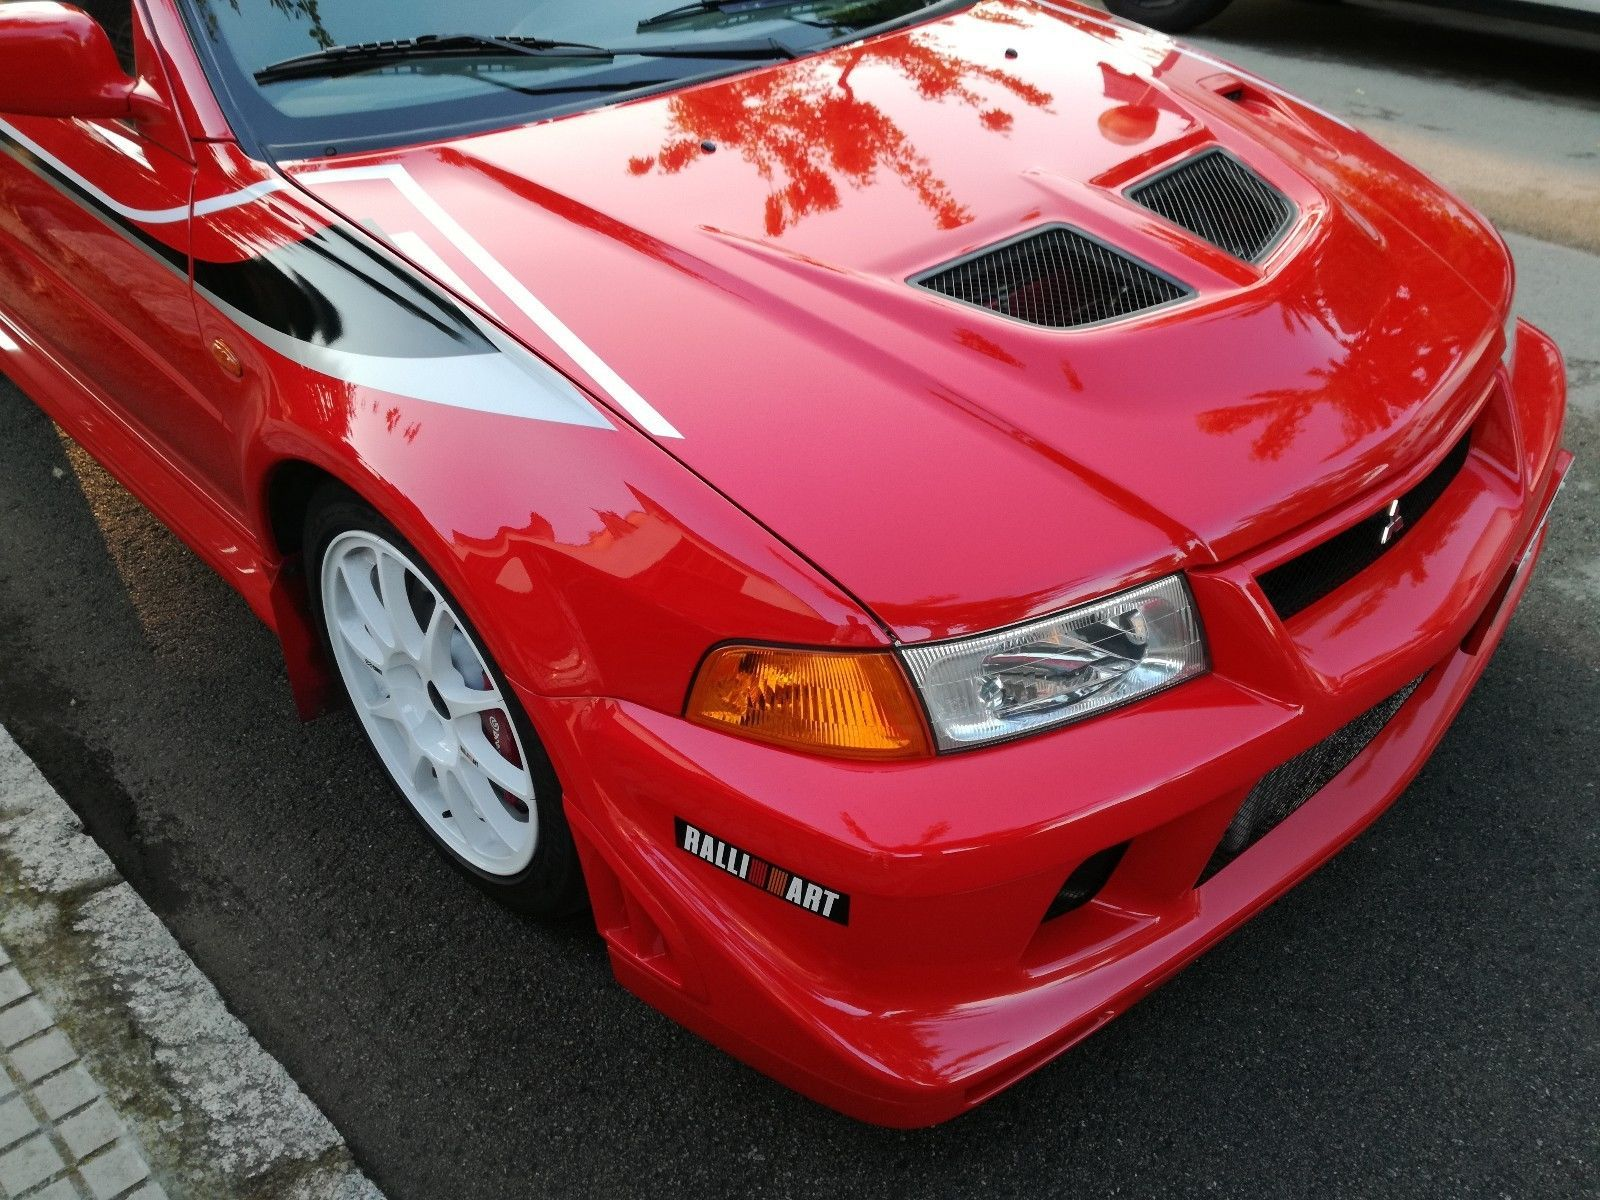 Mitsubishi Lancer Evolution 6.5 Tommi Makinen Edition 75